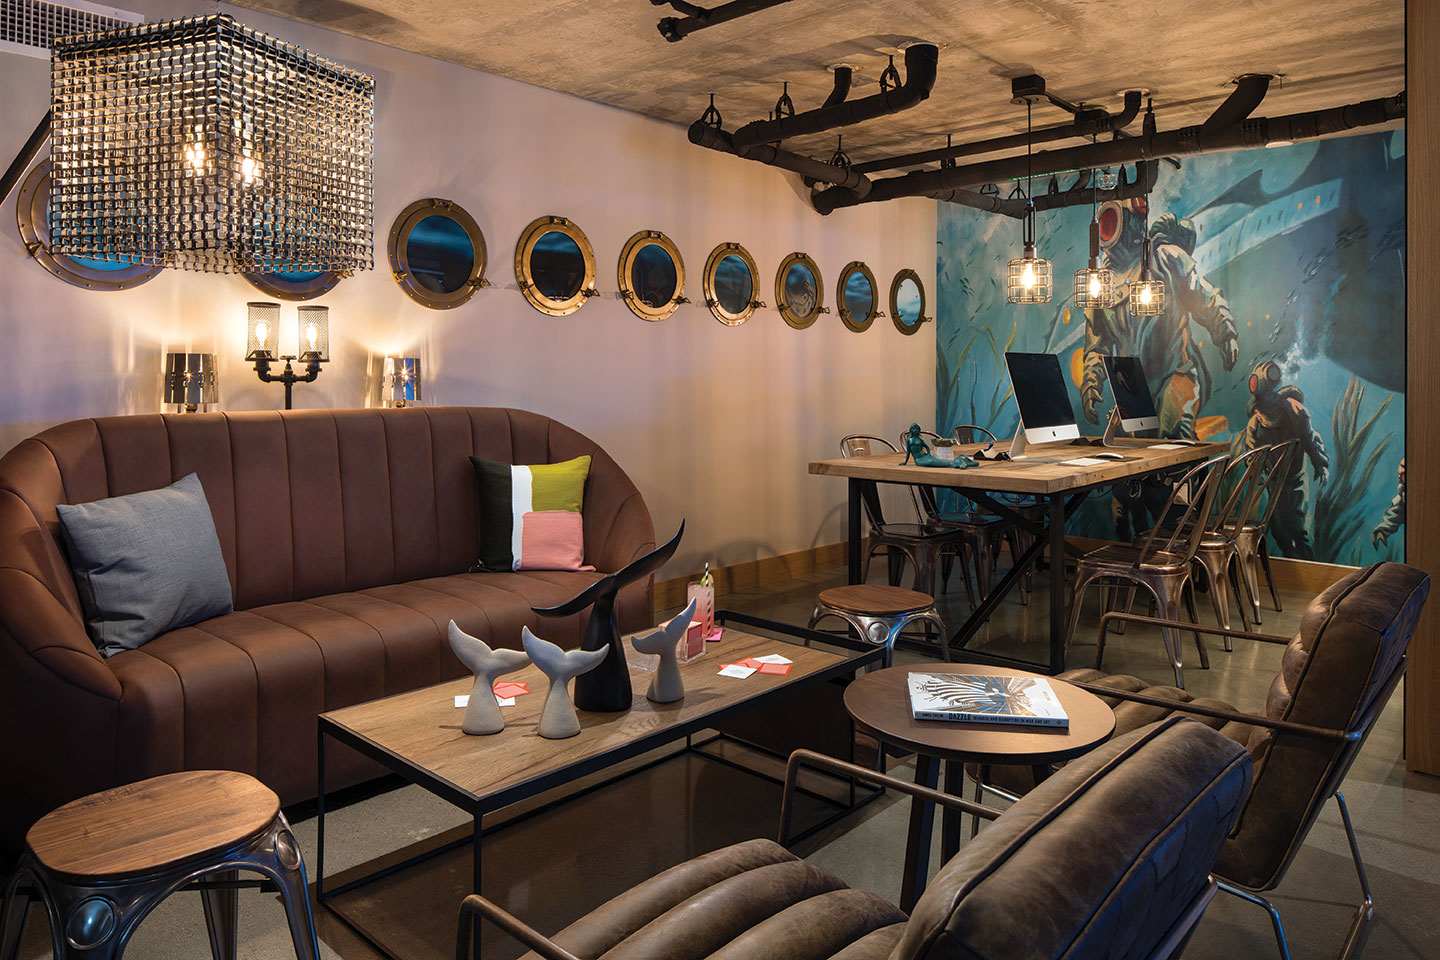 Moxy San Diego Marriot hotel design nautical portholes mural